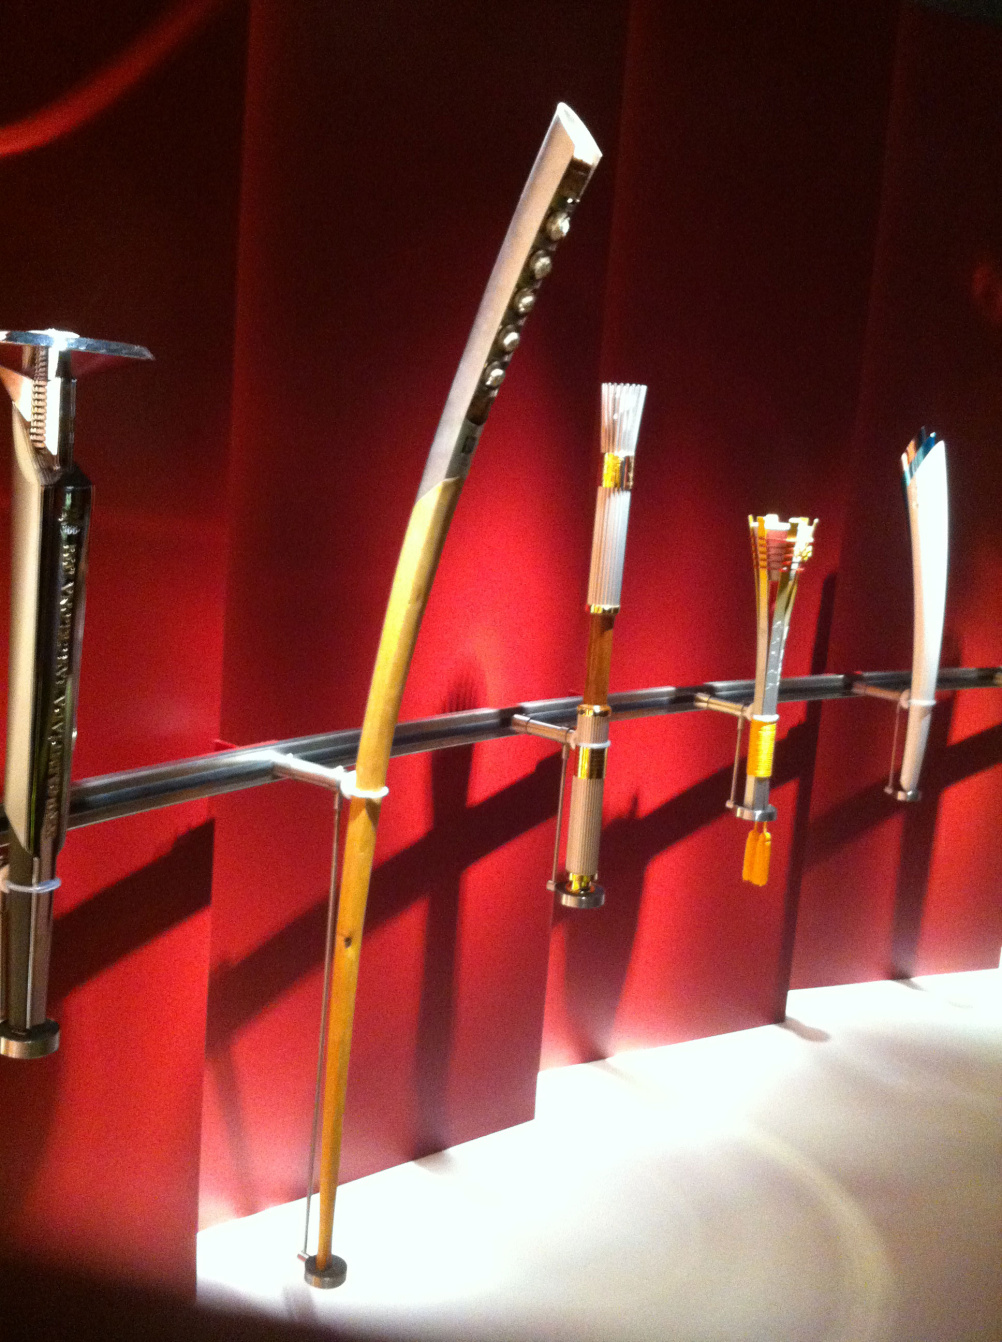 The Lillehammer torch dwarfs the others on display